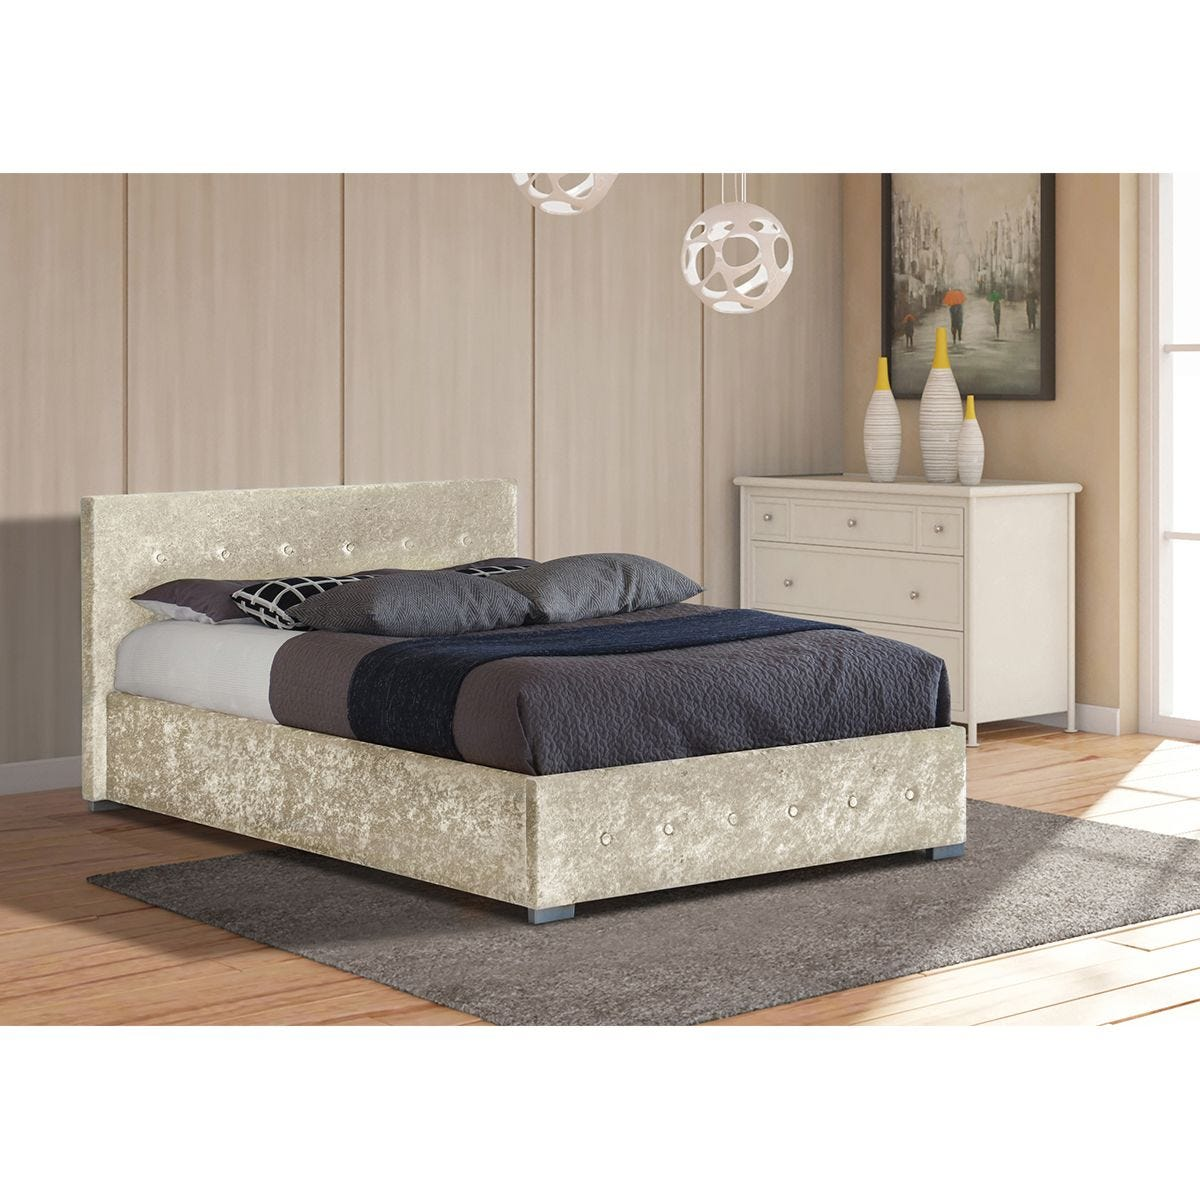 Albie Ottoman Storage Bed - Cream